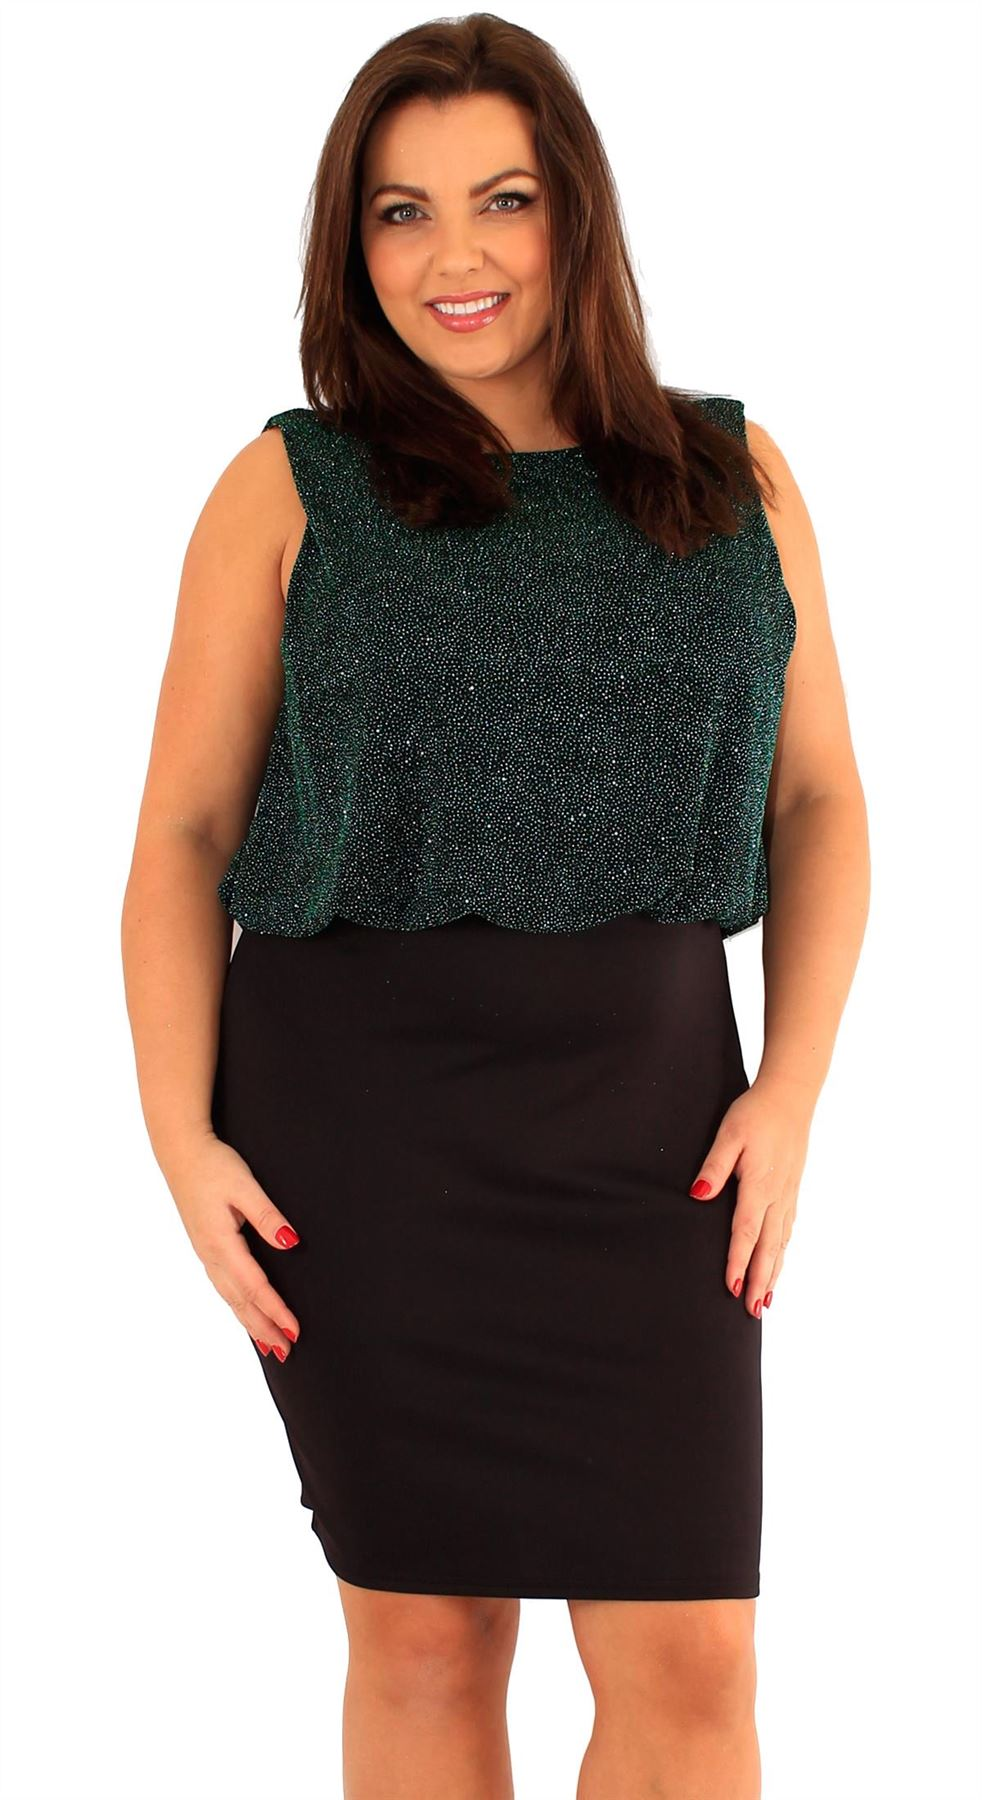 New Ladies Plus Size 2 in 1 Sparkle Cowl Back Party Dress 18-24 | eBay